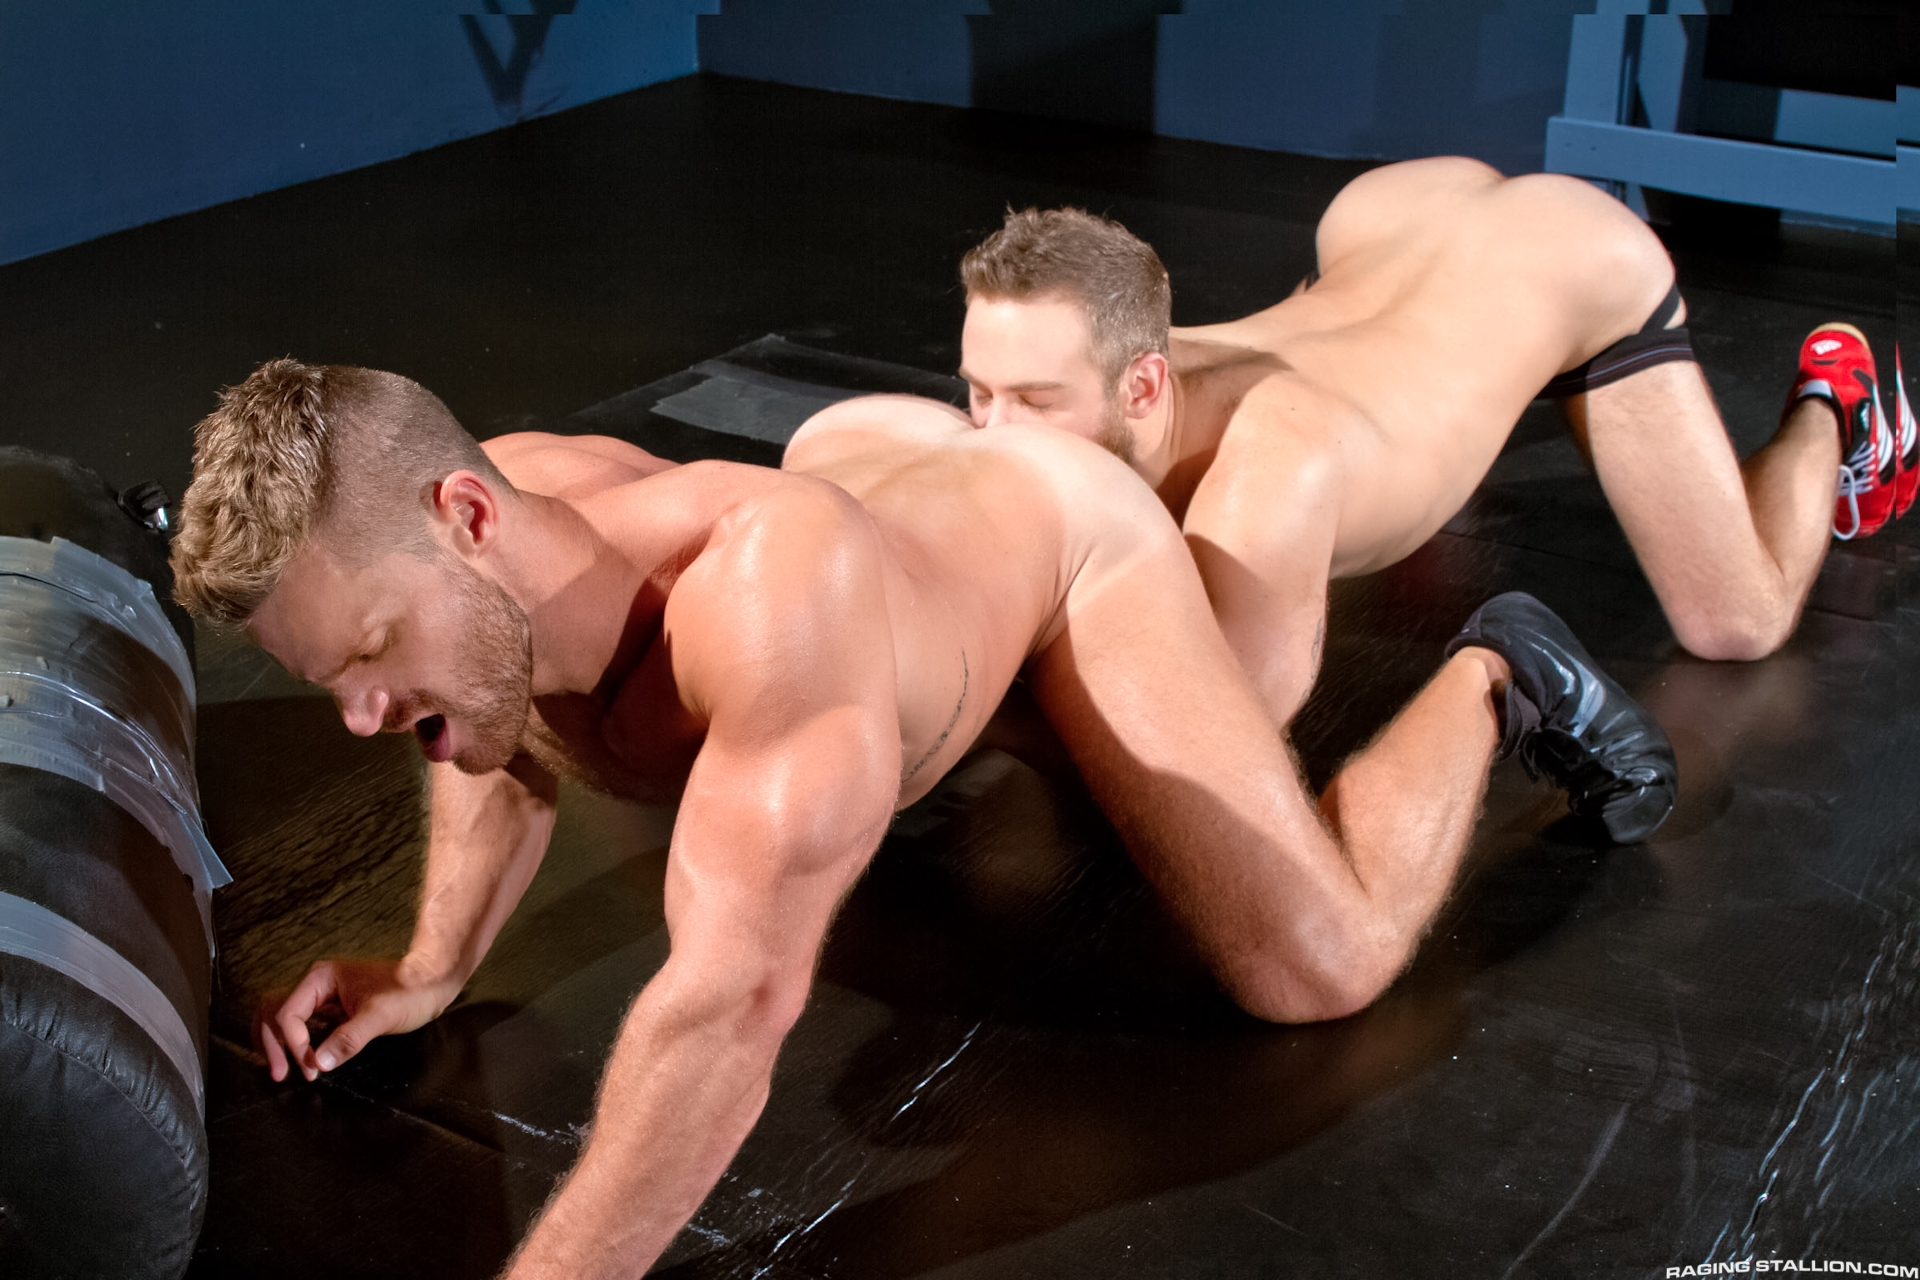 Shawn Wolfe and Landon Conrad flip-fuck in the gay porn film Cock Fight by Raging Stallion.